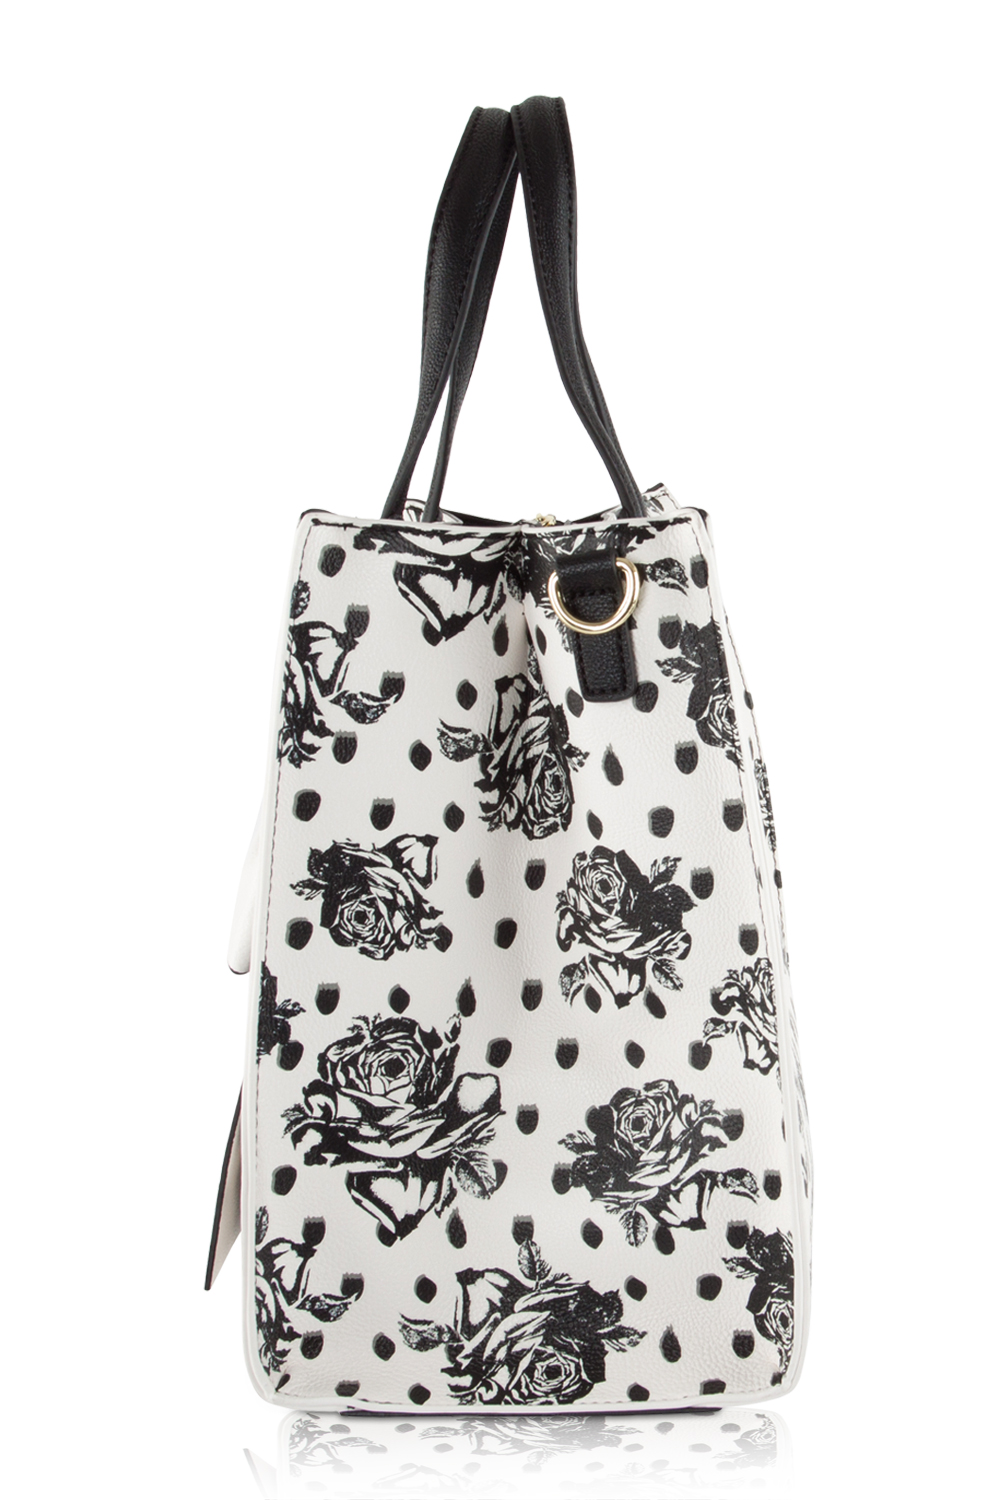 Betsey Johnson Bag In Bag Satchel Tote With Pouch - Floral | EBay